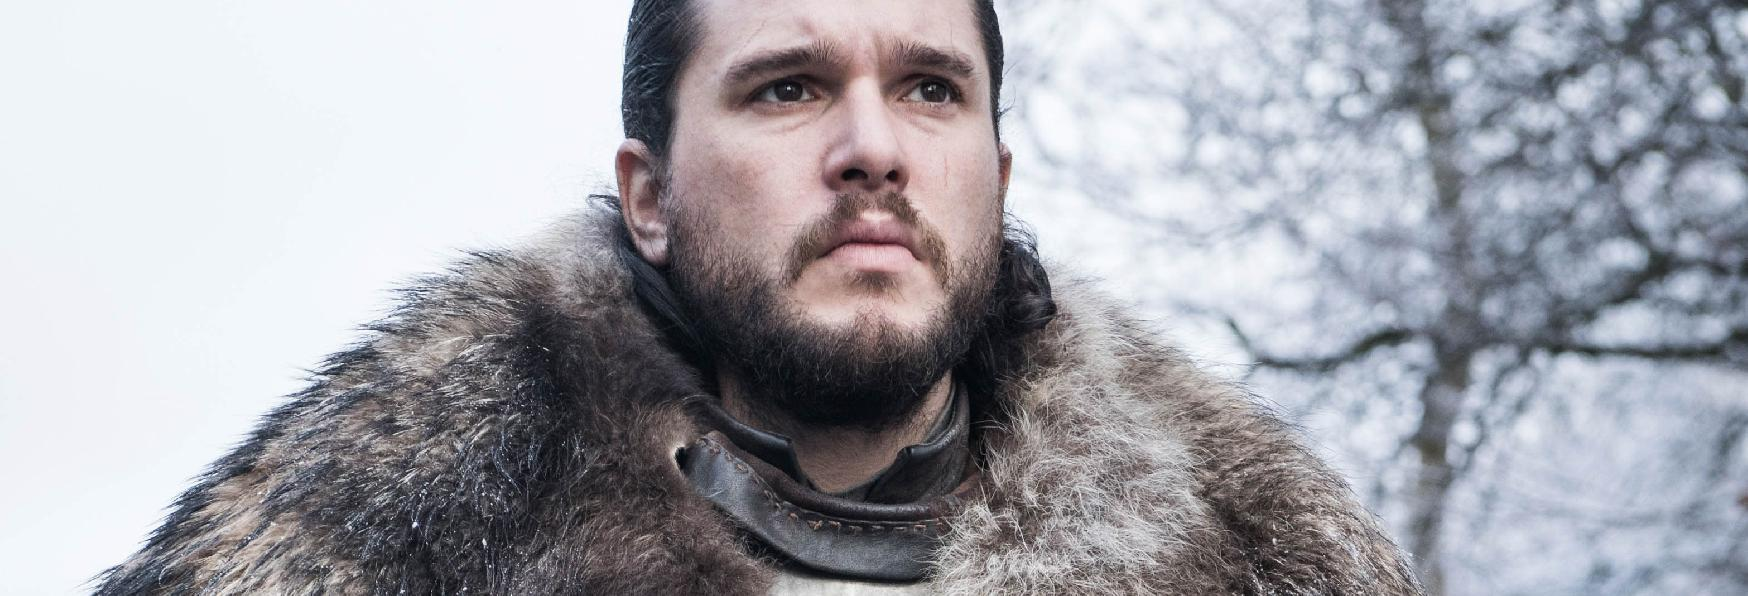 Game of Thrones: l'Episodio 8x04 è uno dei Preferiti di Kit Harington (Jon Snow)